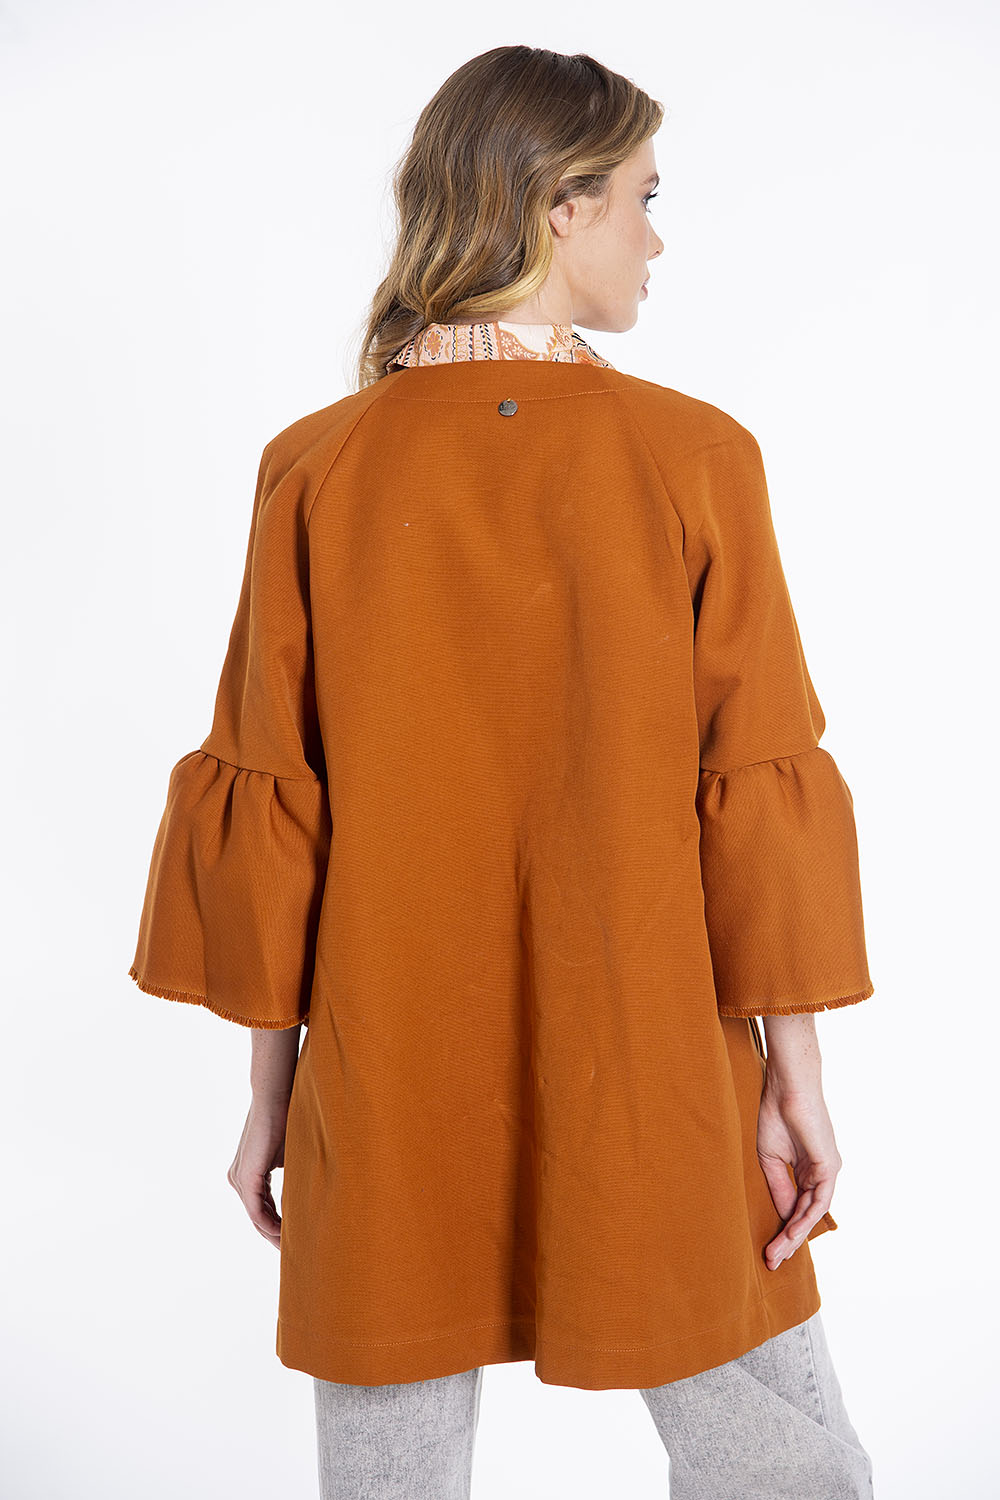 Tensione in duster coat with bell sleeves